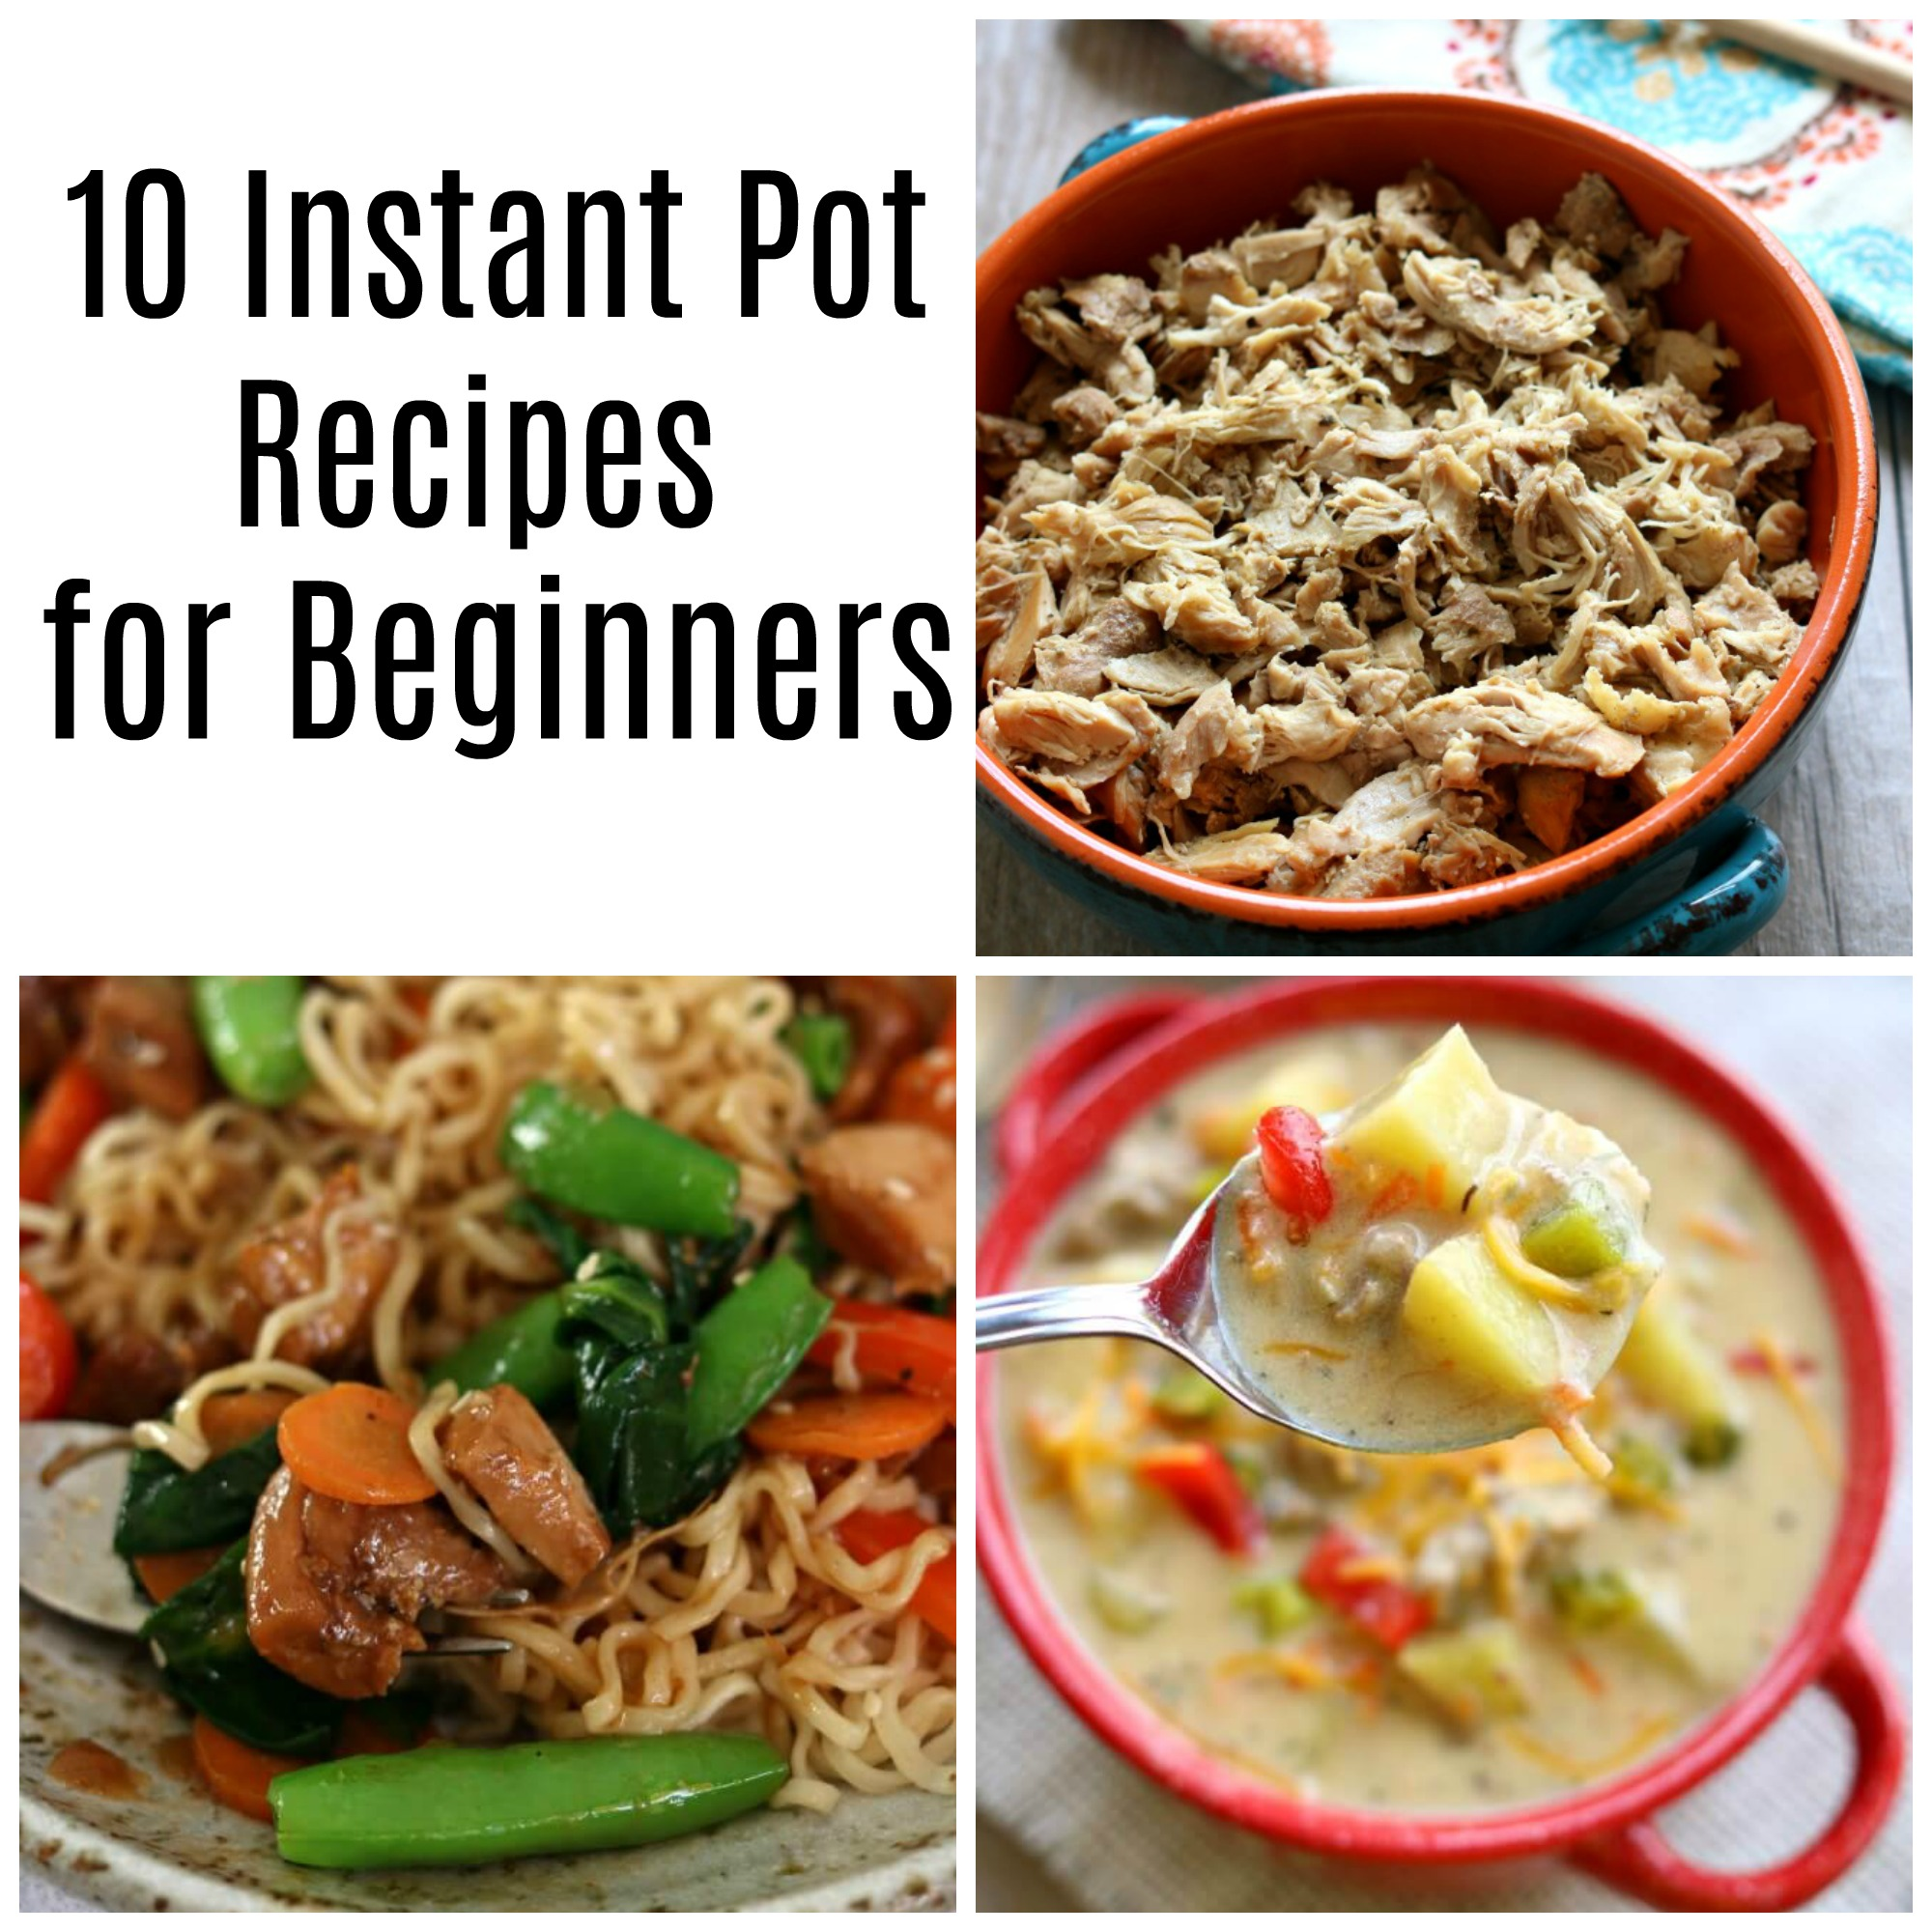 10 instant pot recipes for beginners 365 days of slow cooking and 10 instant pot recipes for beginners 365 days of slow cooking and pressure cooking forumfinder Images